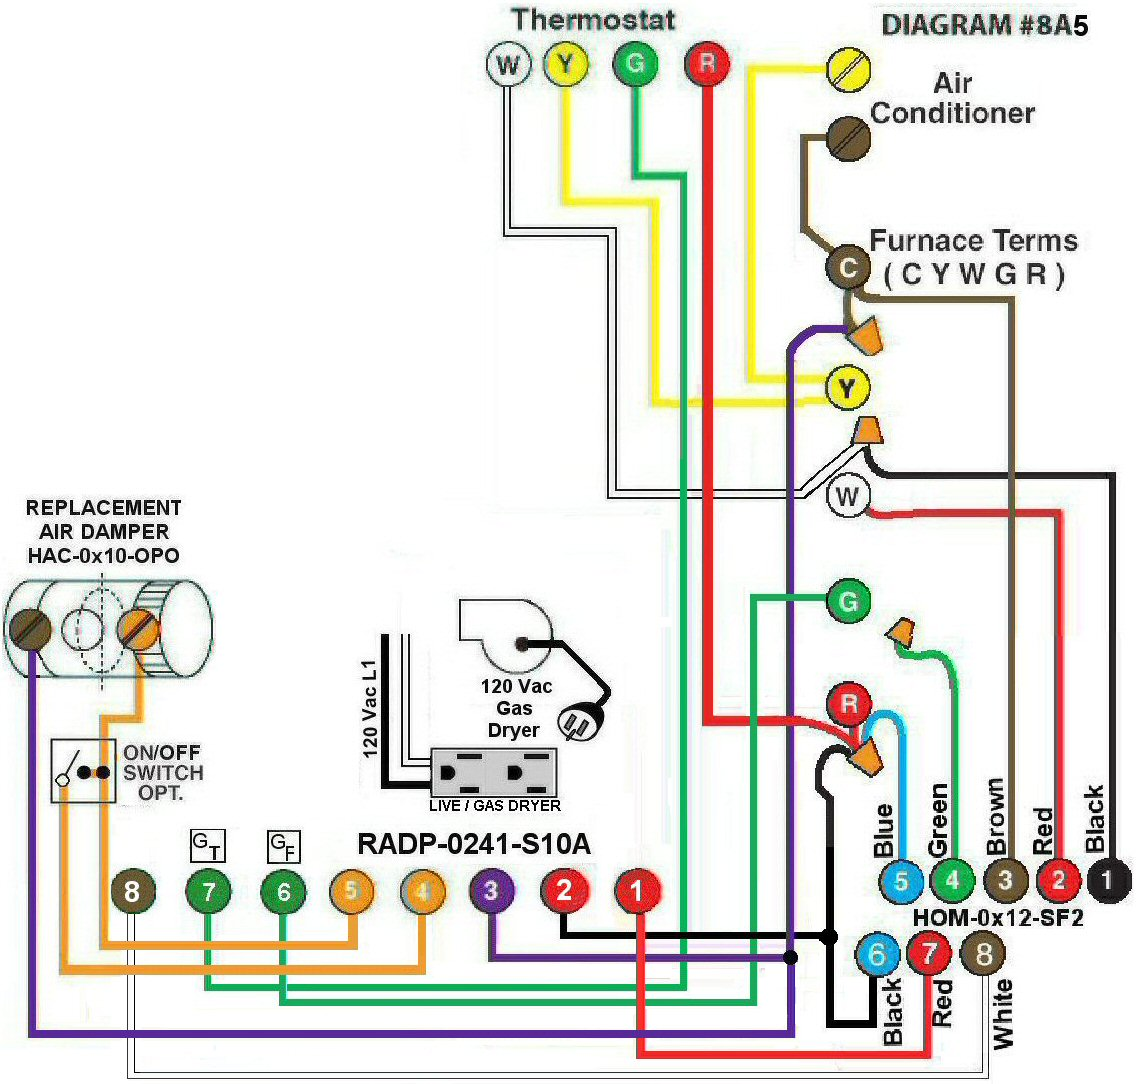 Fireplace Gas Valve For Furnace Wiring Diagram Best Secret On Goodman Blower Motor Majestic Fireplaces Heater